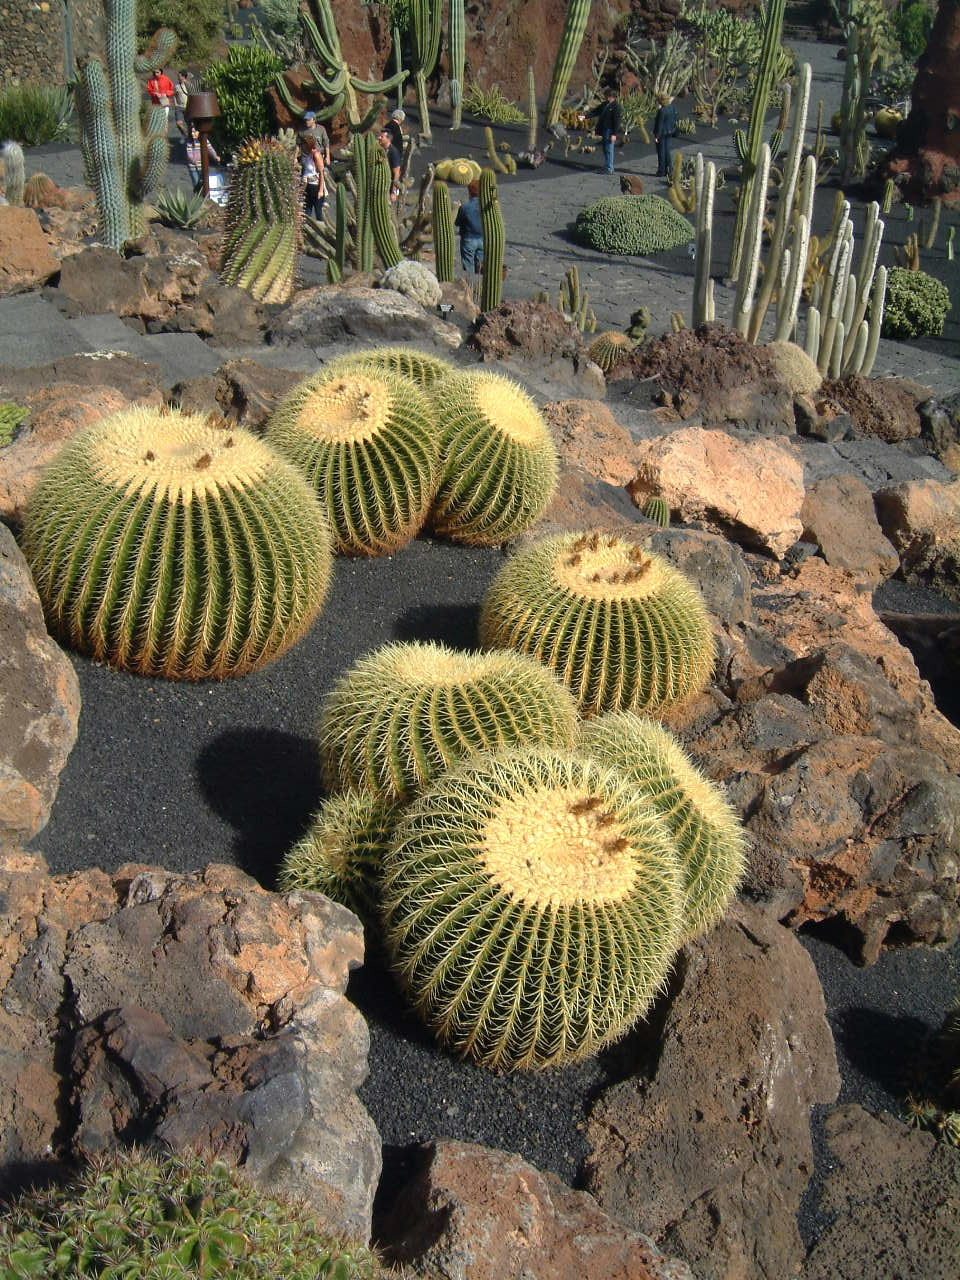 List of sights for Jardin de cactus lanzarote